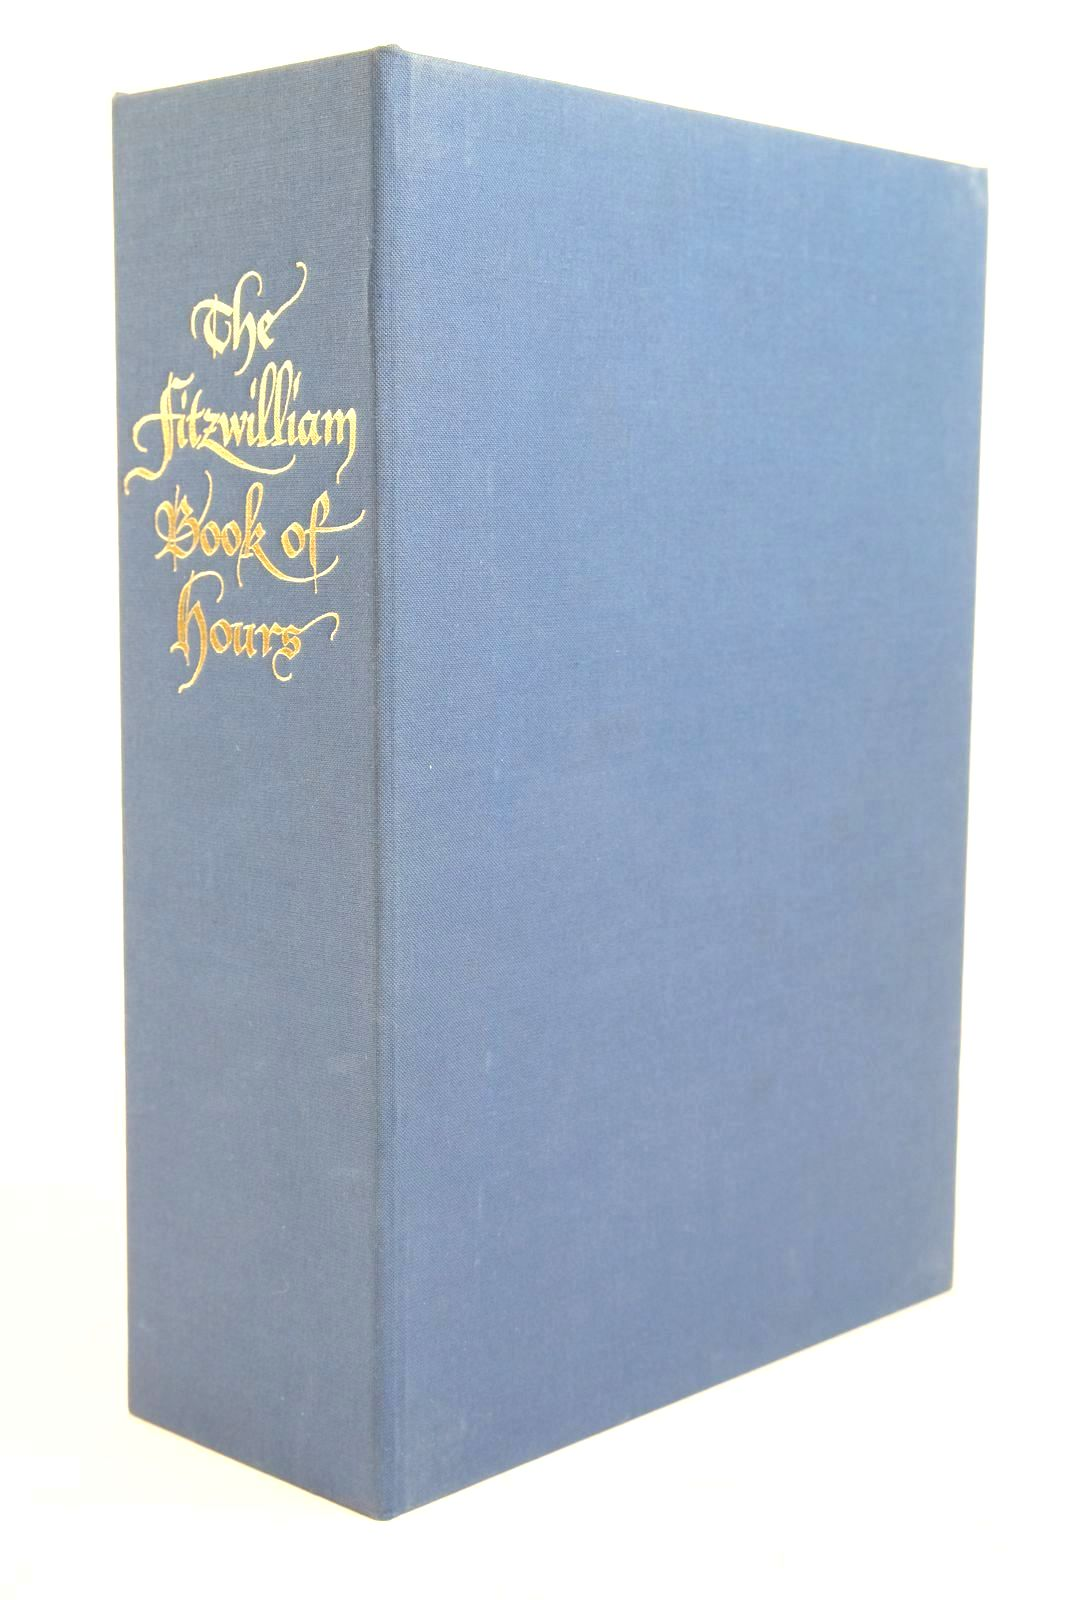 Photo of THE FITZWILLIAM BOOK OF HOURS written by Panayotova, Stella published by Folio Society (STOCK CODE: 1320941)  for sale by Stella & Rose's Books